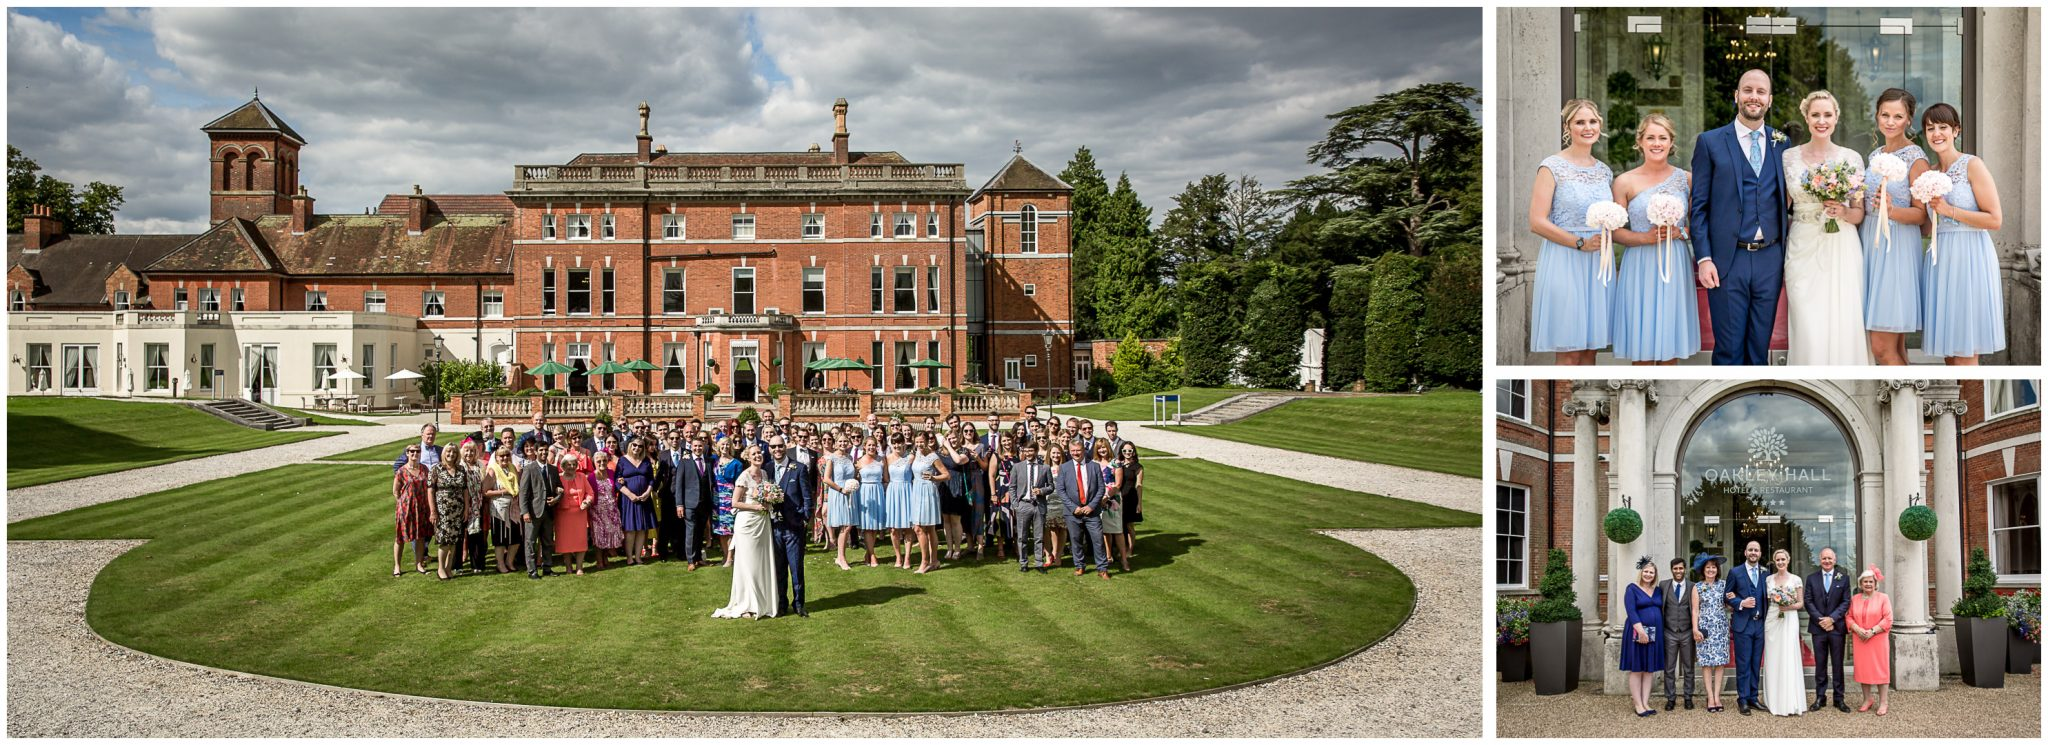 Oakley Hall wedding photography group photos on lawn